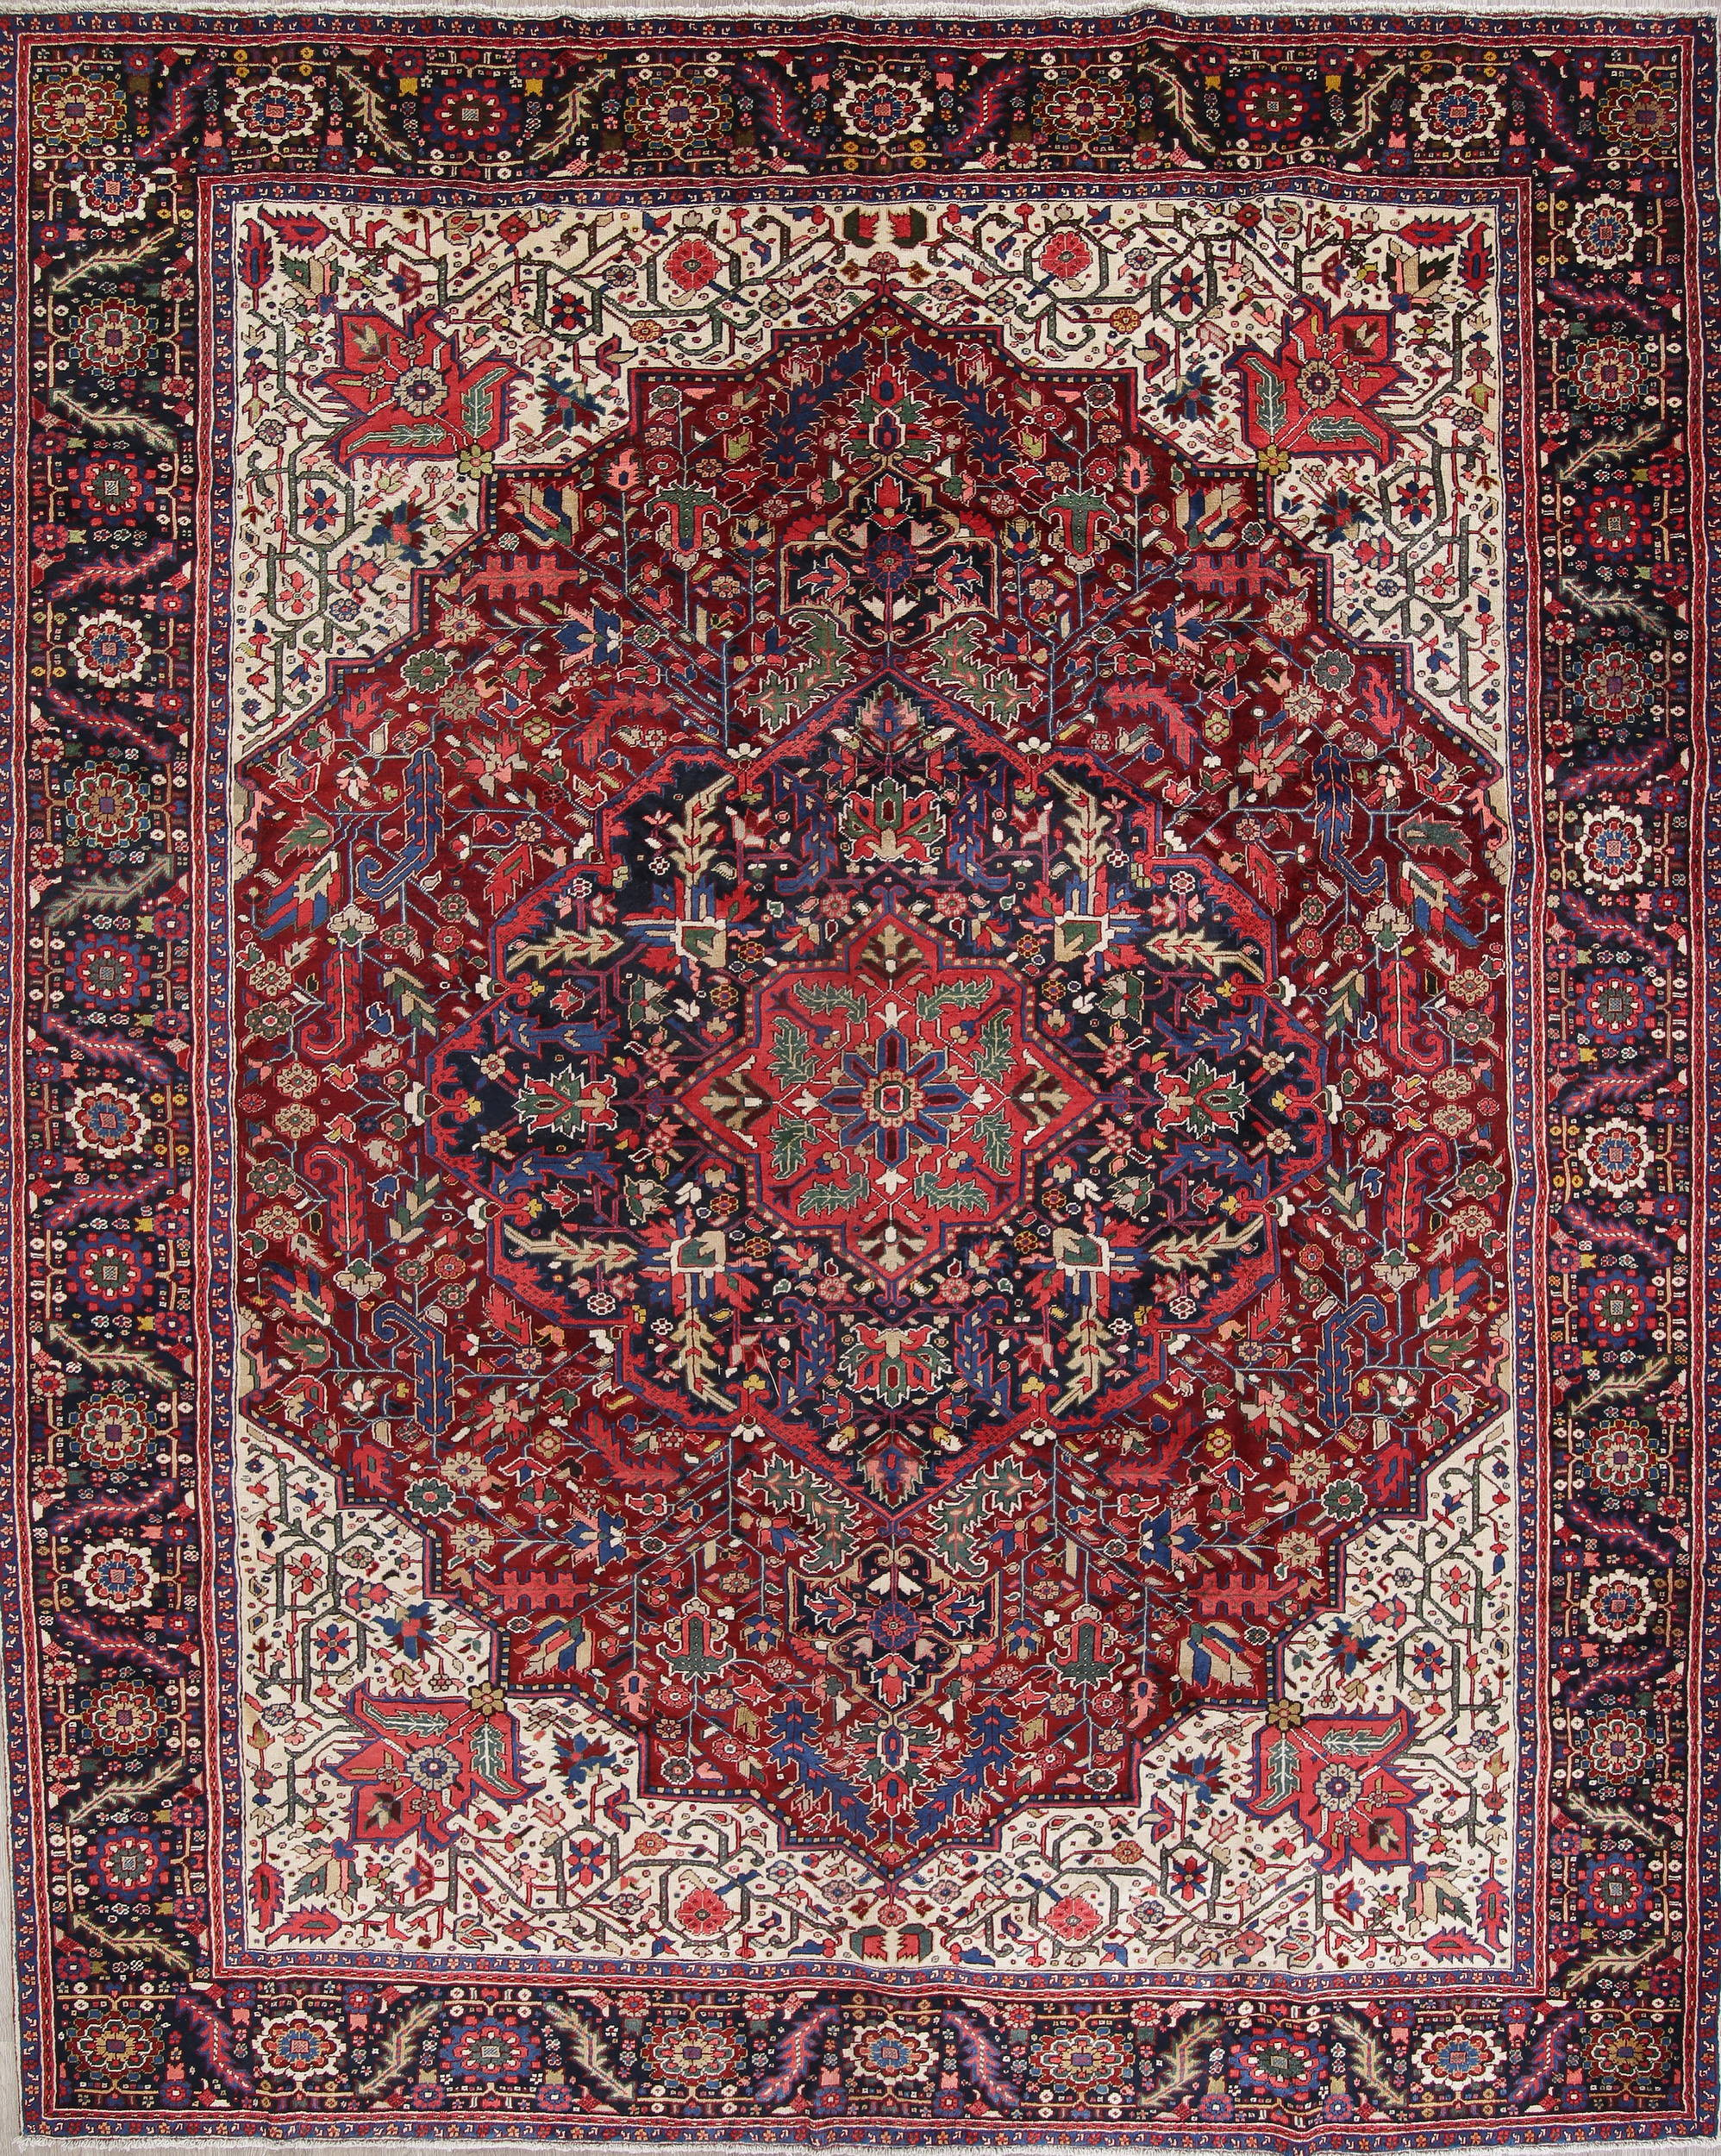 Palace Size Vegetable Dye Heriz Persian Hand Knotted 12x14 Wool Rug